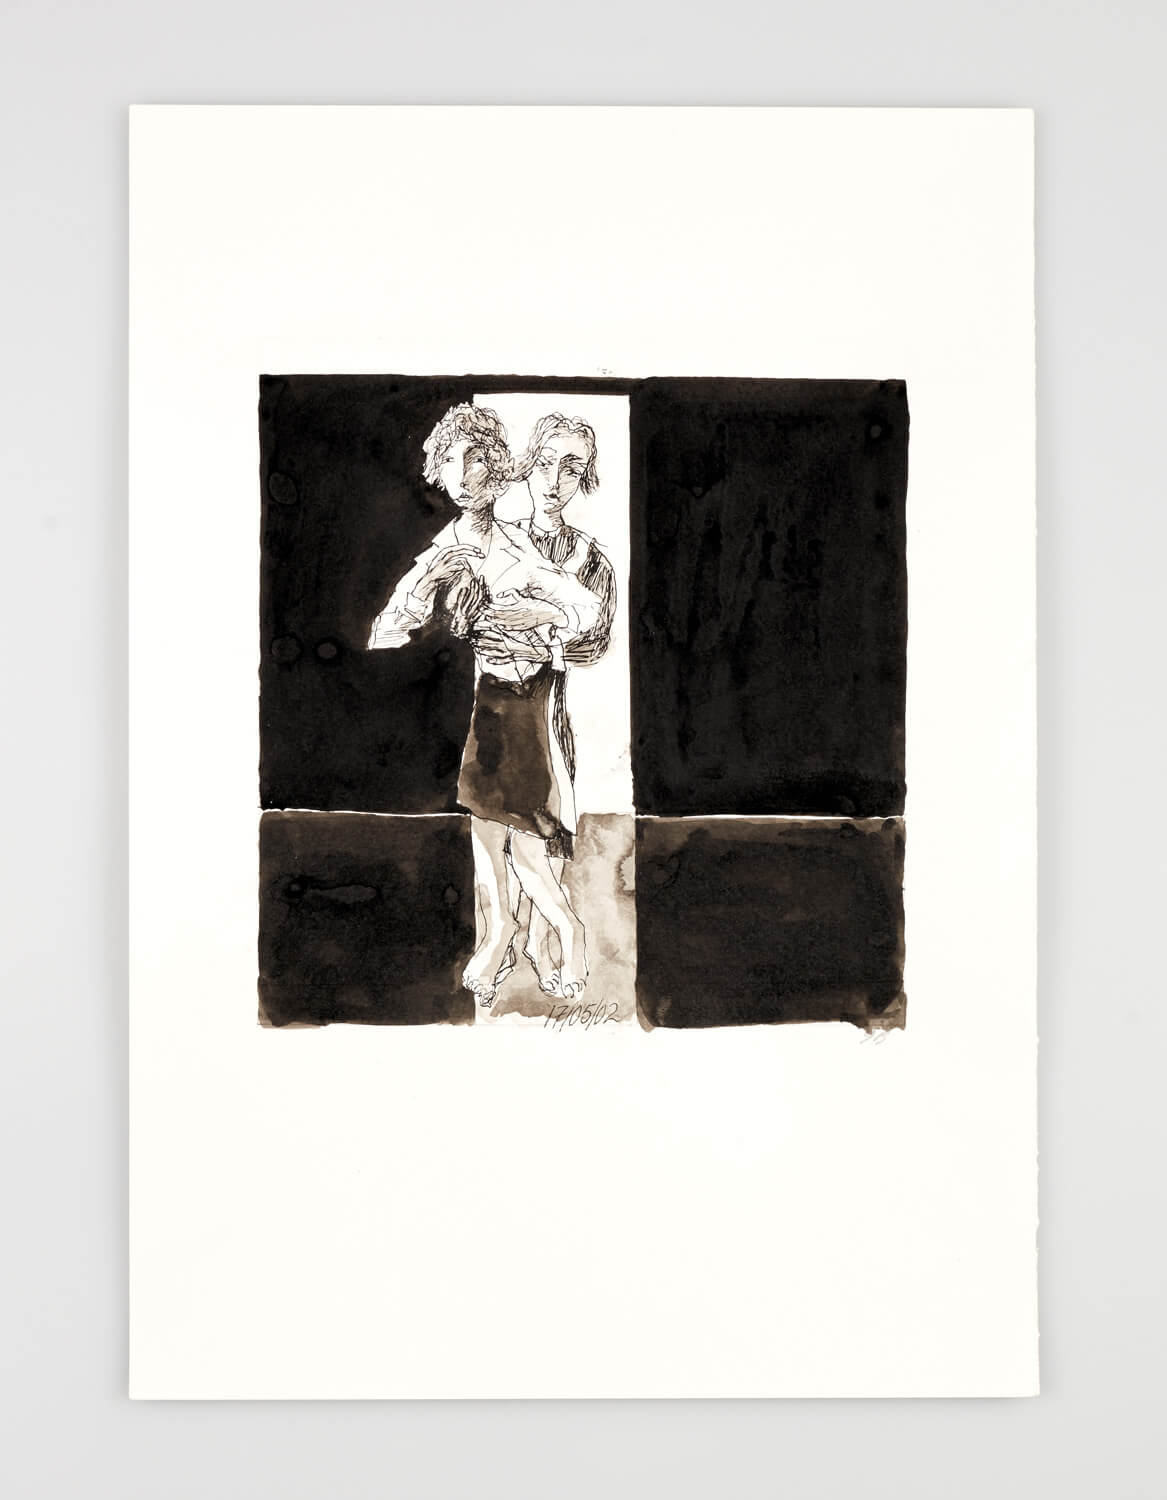 JB074 - Two Women - Being dressed - 2002 - 50 x 35 cm - Indian ink and wash on paper